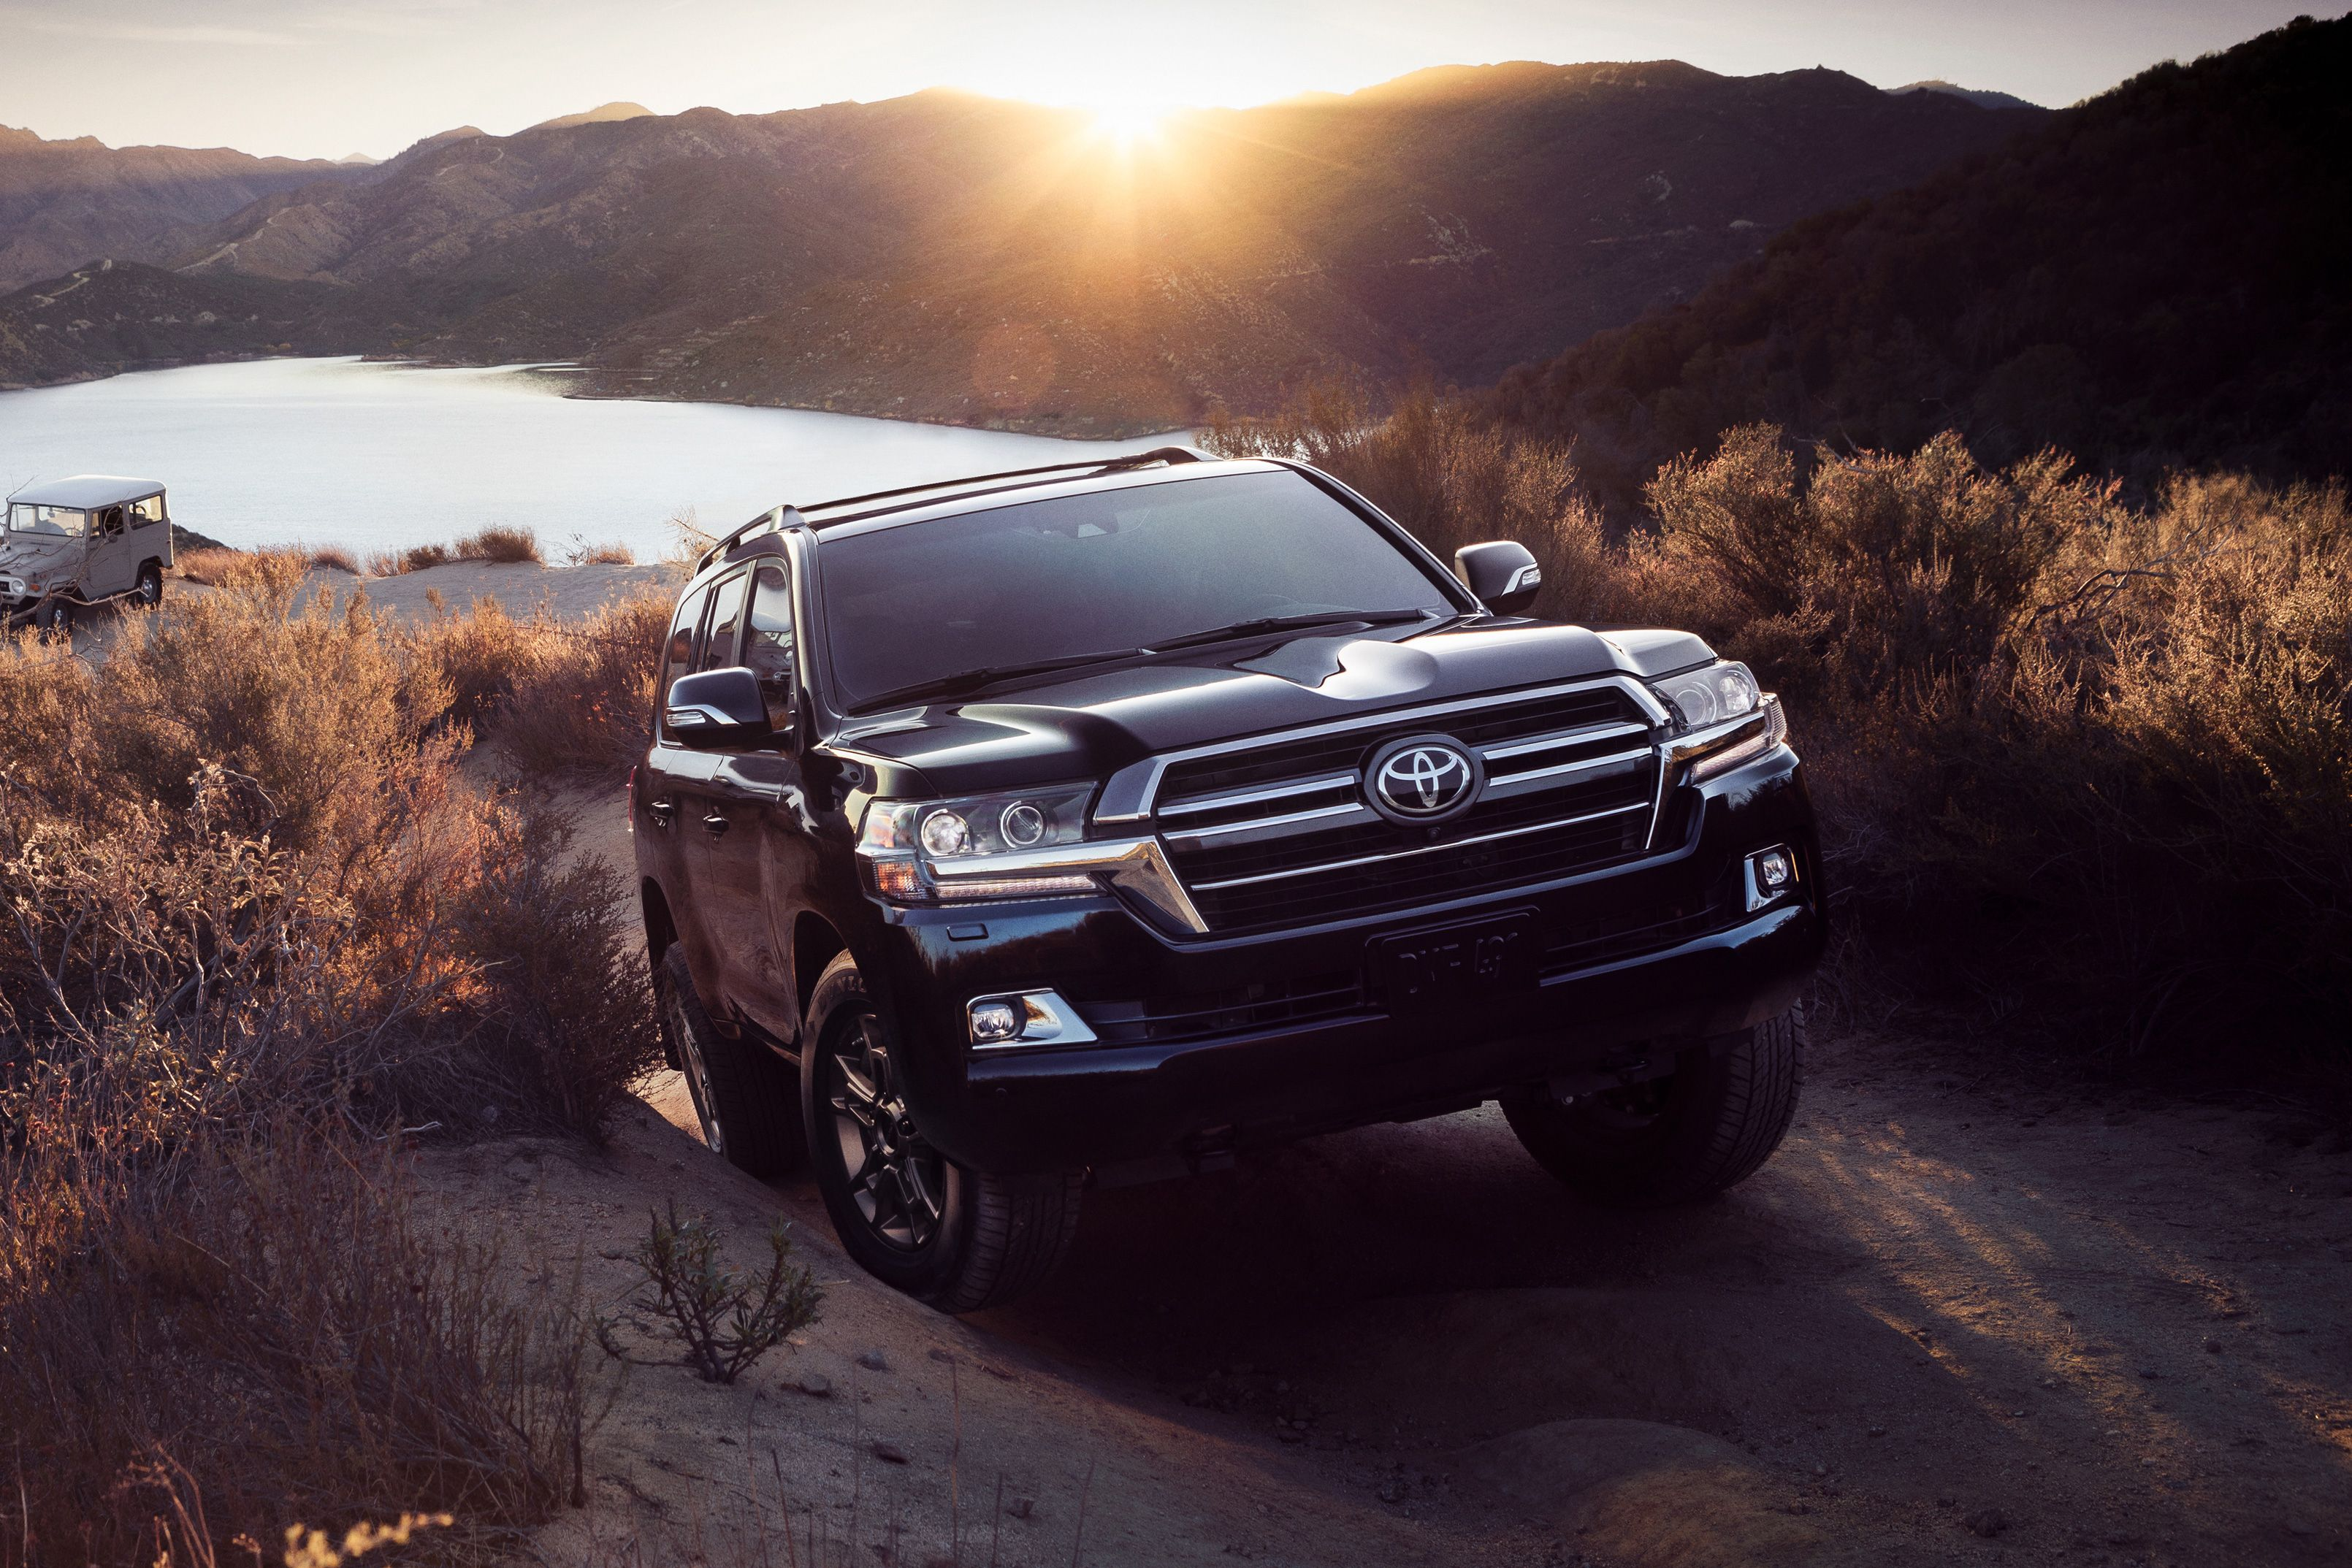 2021 Toyota Land Cruiser Review, Pricing, and Specs